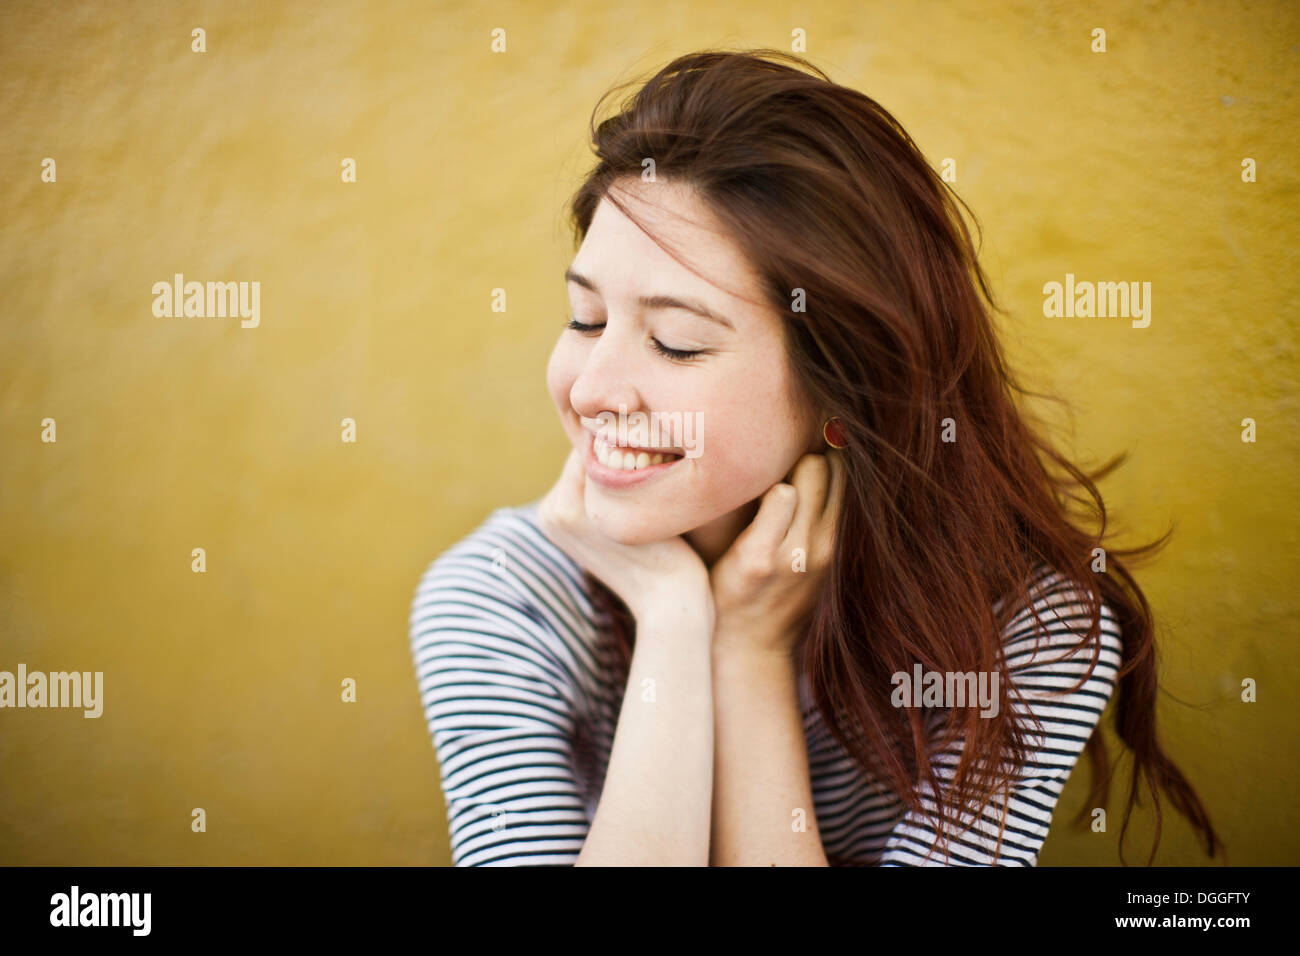 Candid portrait of young woman with eyes closed Photo Stock